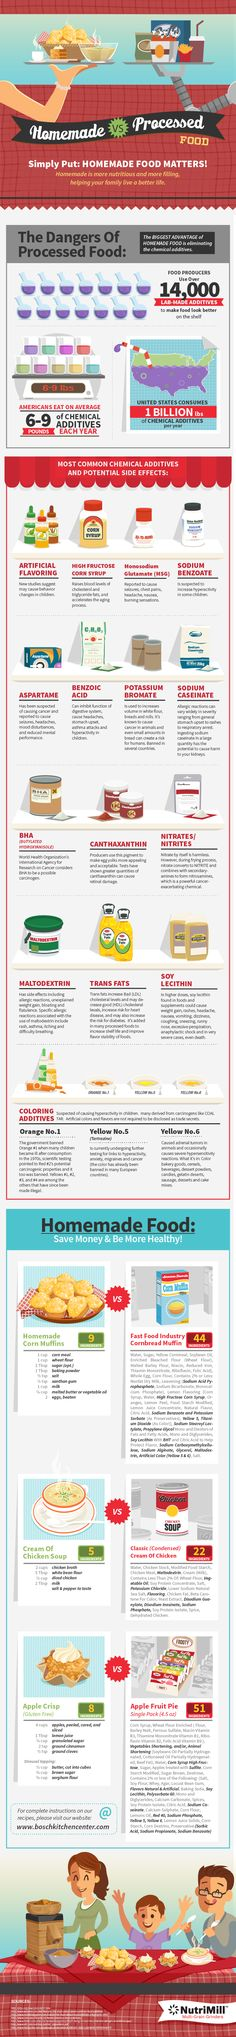 Homemade Food vs Processed Infographic - learn about the food you eat, from BoschKitchenCenters.com